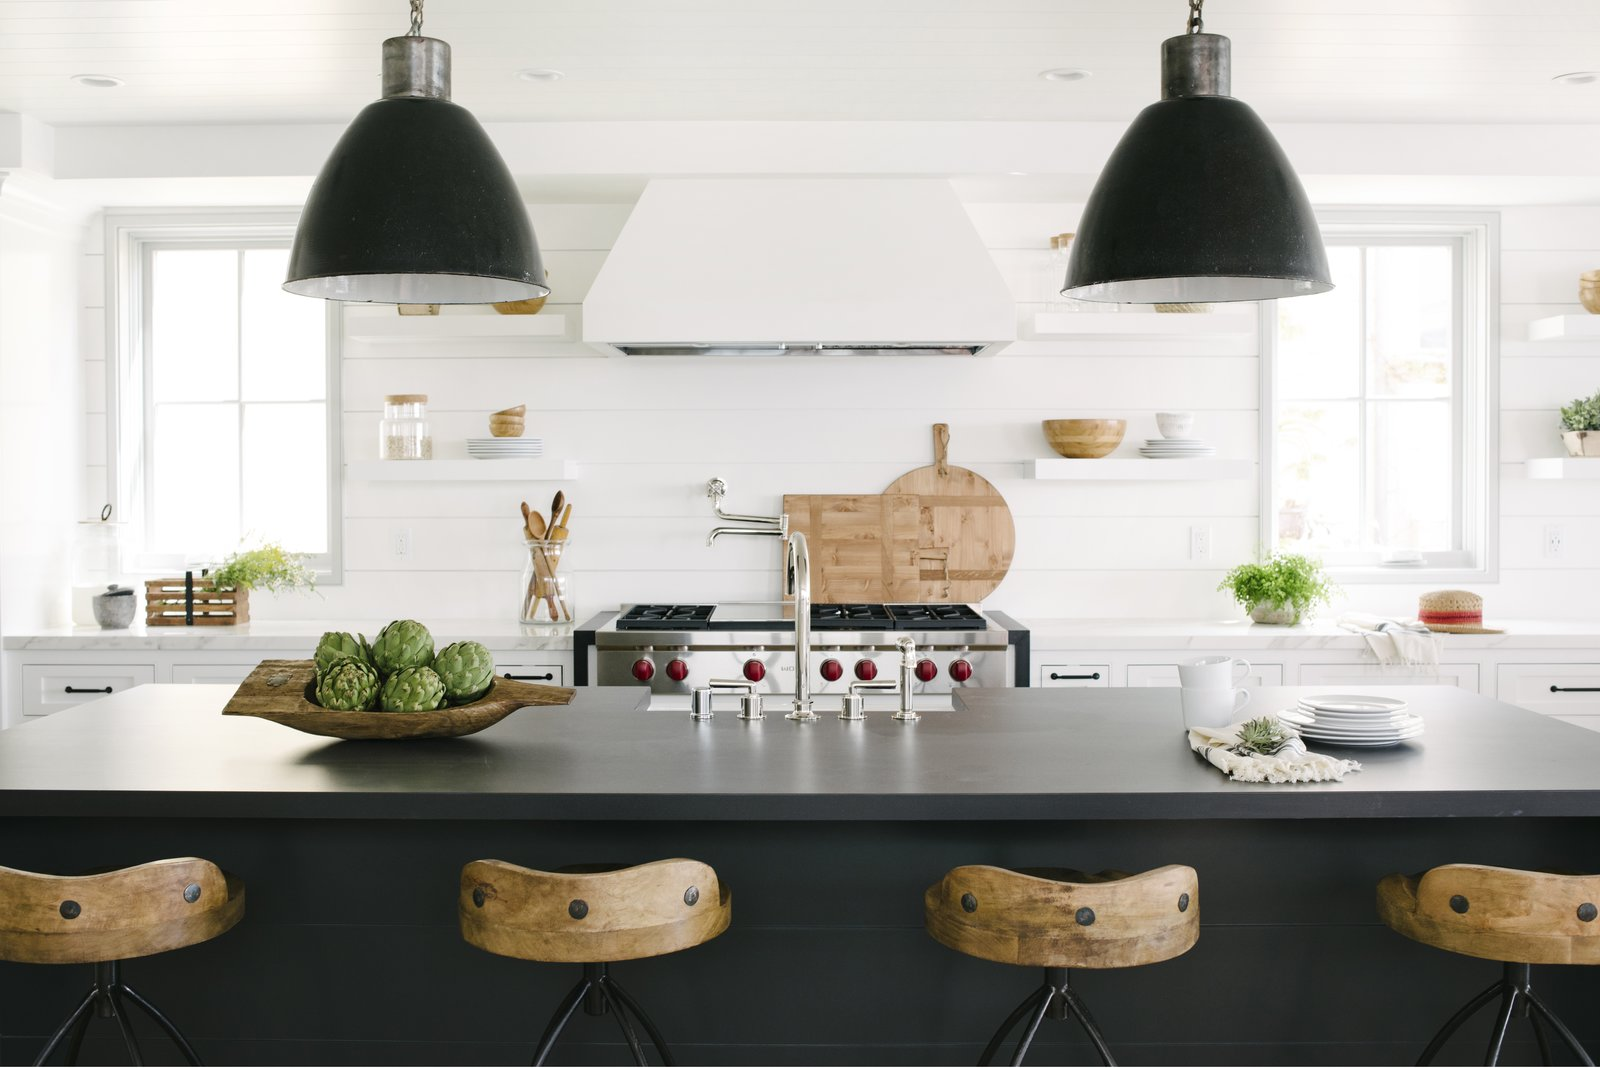 Kitchen, Engineered Quartz Counter, Recessed Lighting, White Cabinet, Wood Backsplashe, Range Hood, Pendant Lighting, and Range Interior design photographers Lauren Pressey, Amy Bartlam, and Tessa Neustadt teach you how to prepare for—and execute—a flawless home photoshoot.  Photo 1 of 7 in Pro Tips: How to Style and Shoot Your Modern Home